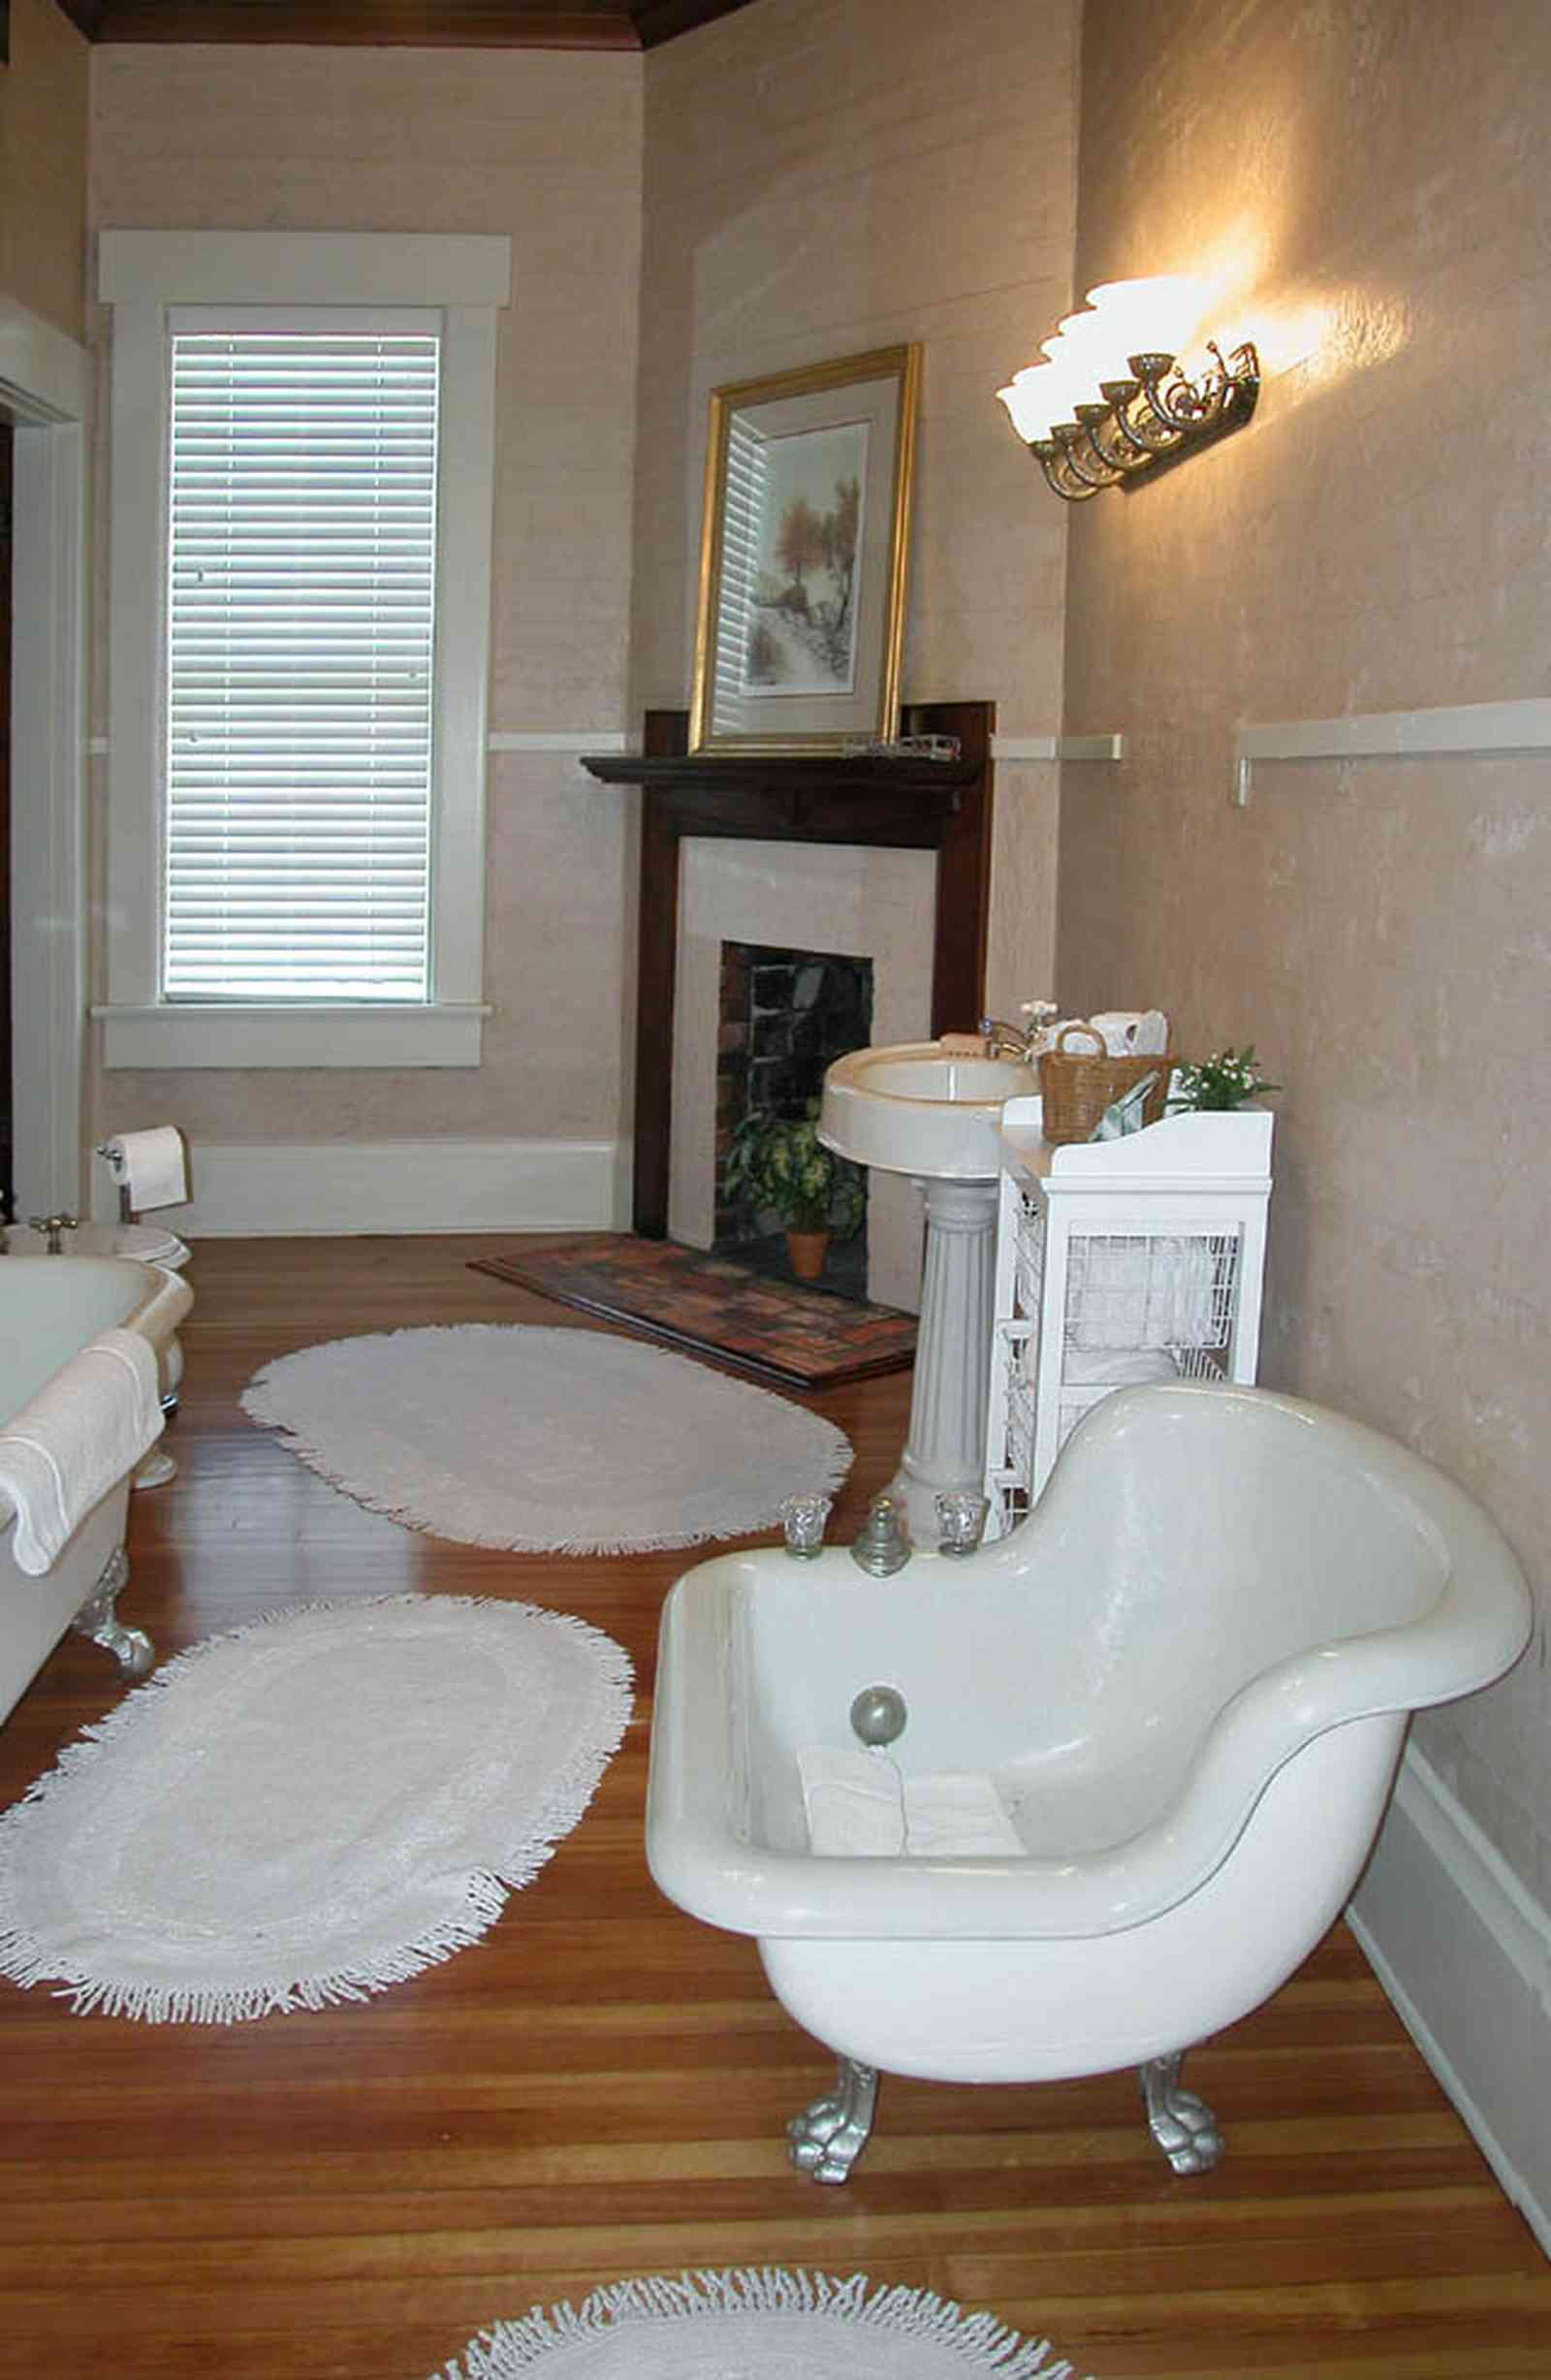 Century:-Tannenheim_01n.jpg:  bathtub, fireplace, pedestal sink, wainscotting, wooden floors, ventian blinds, fringed rugs